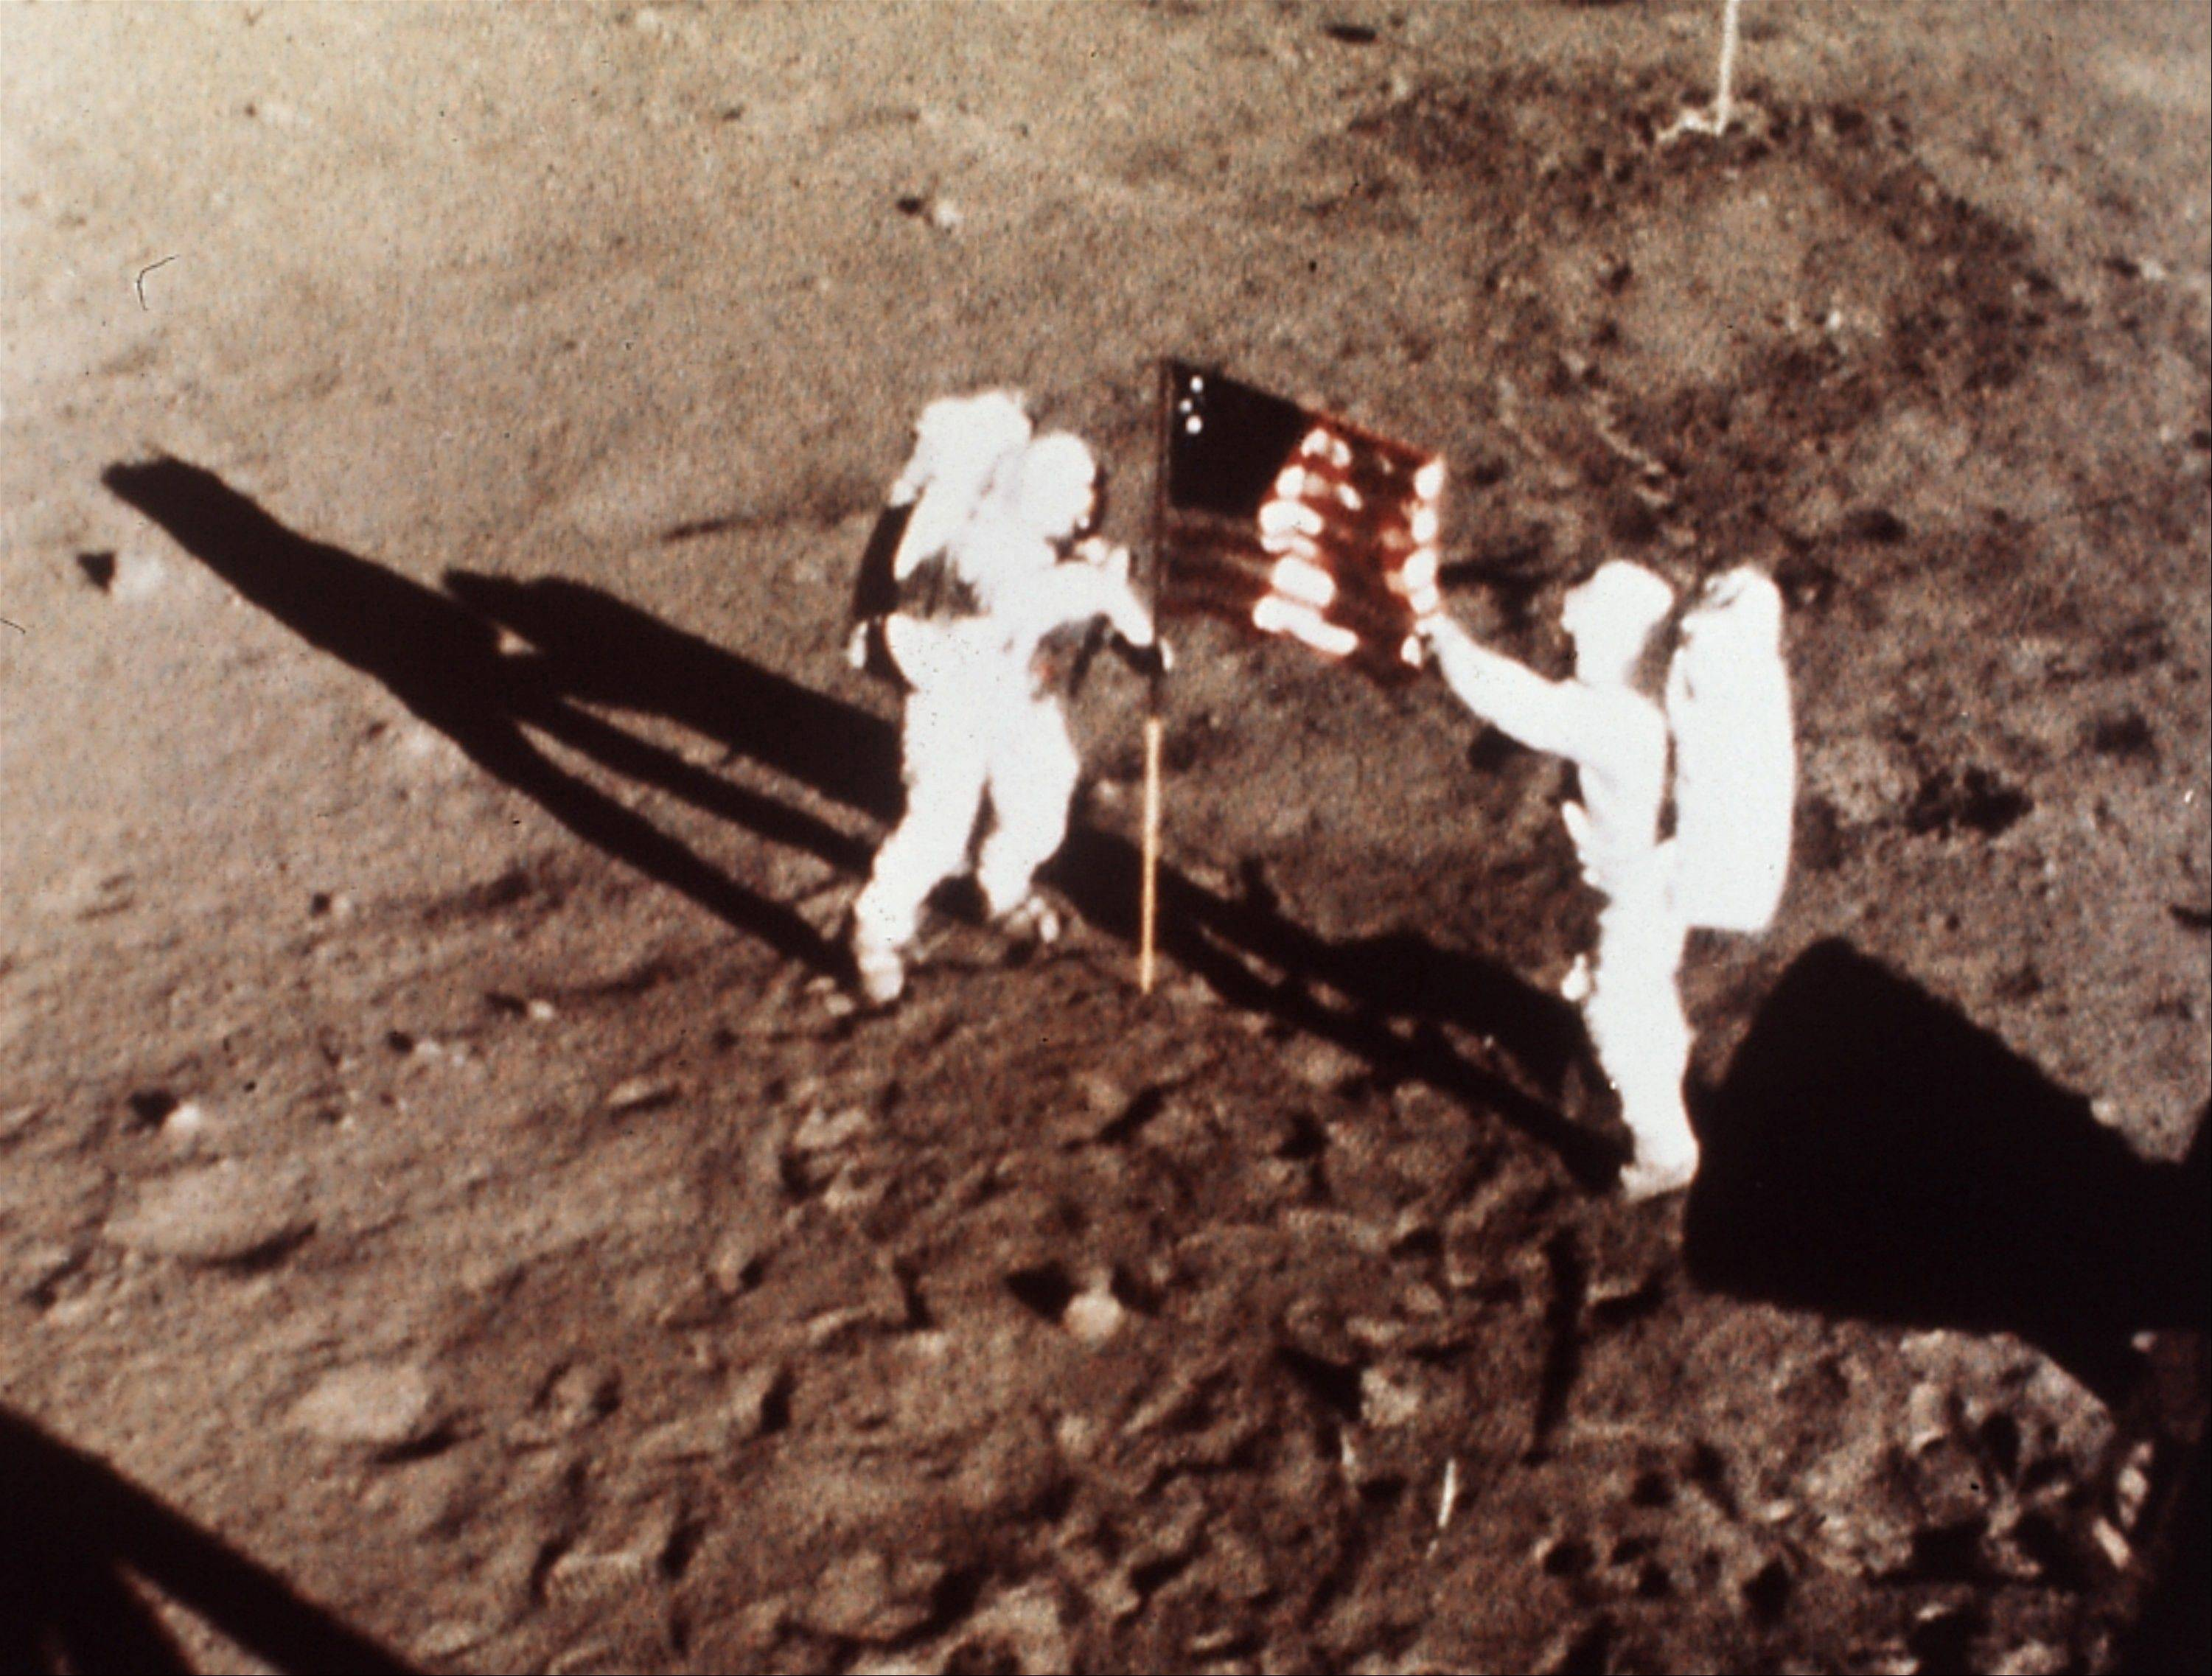 Images from the life of Neil Armstrong